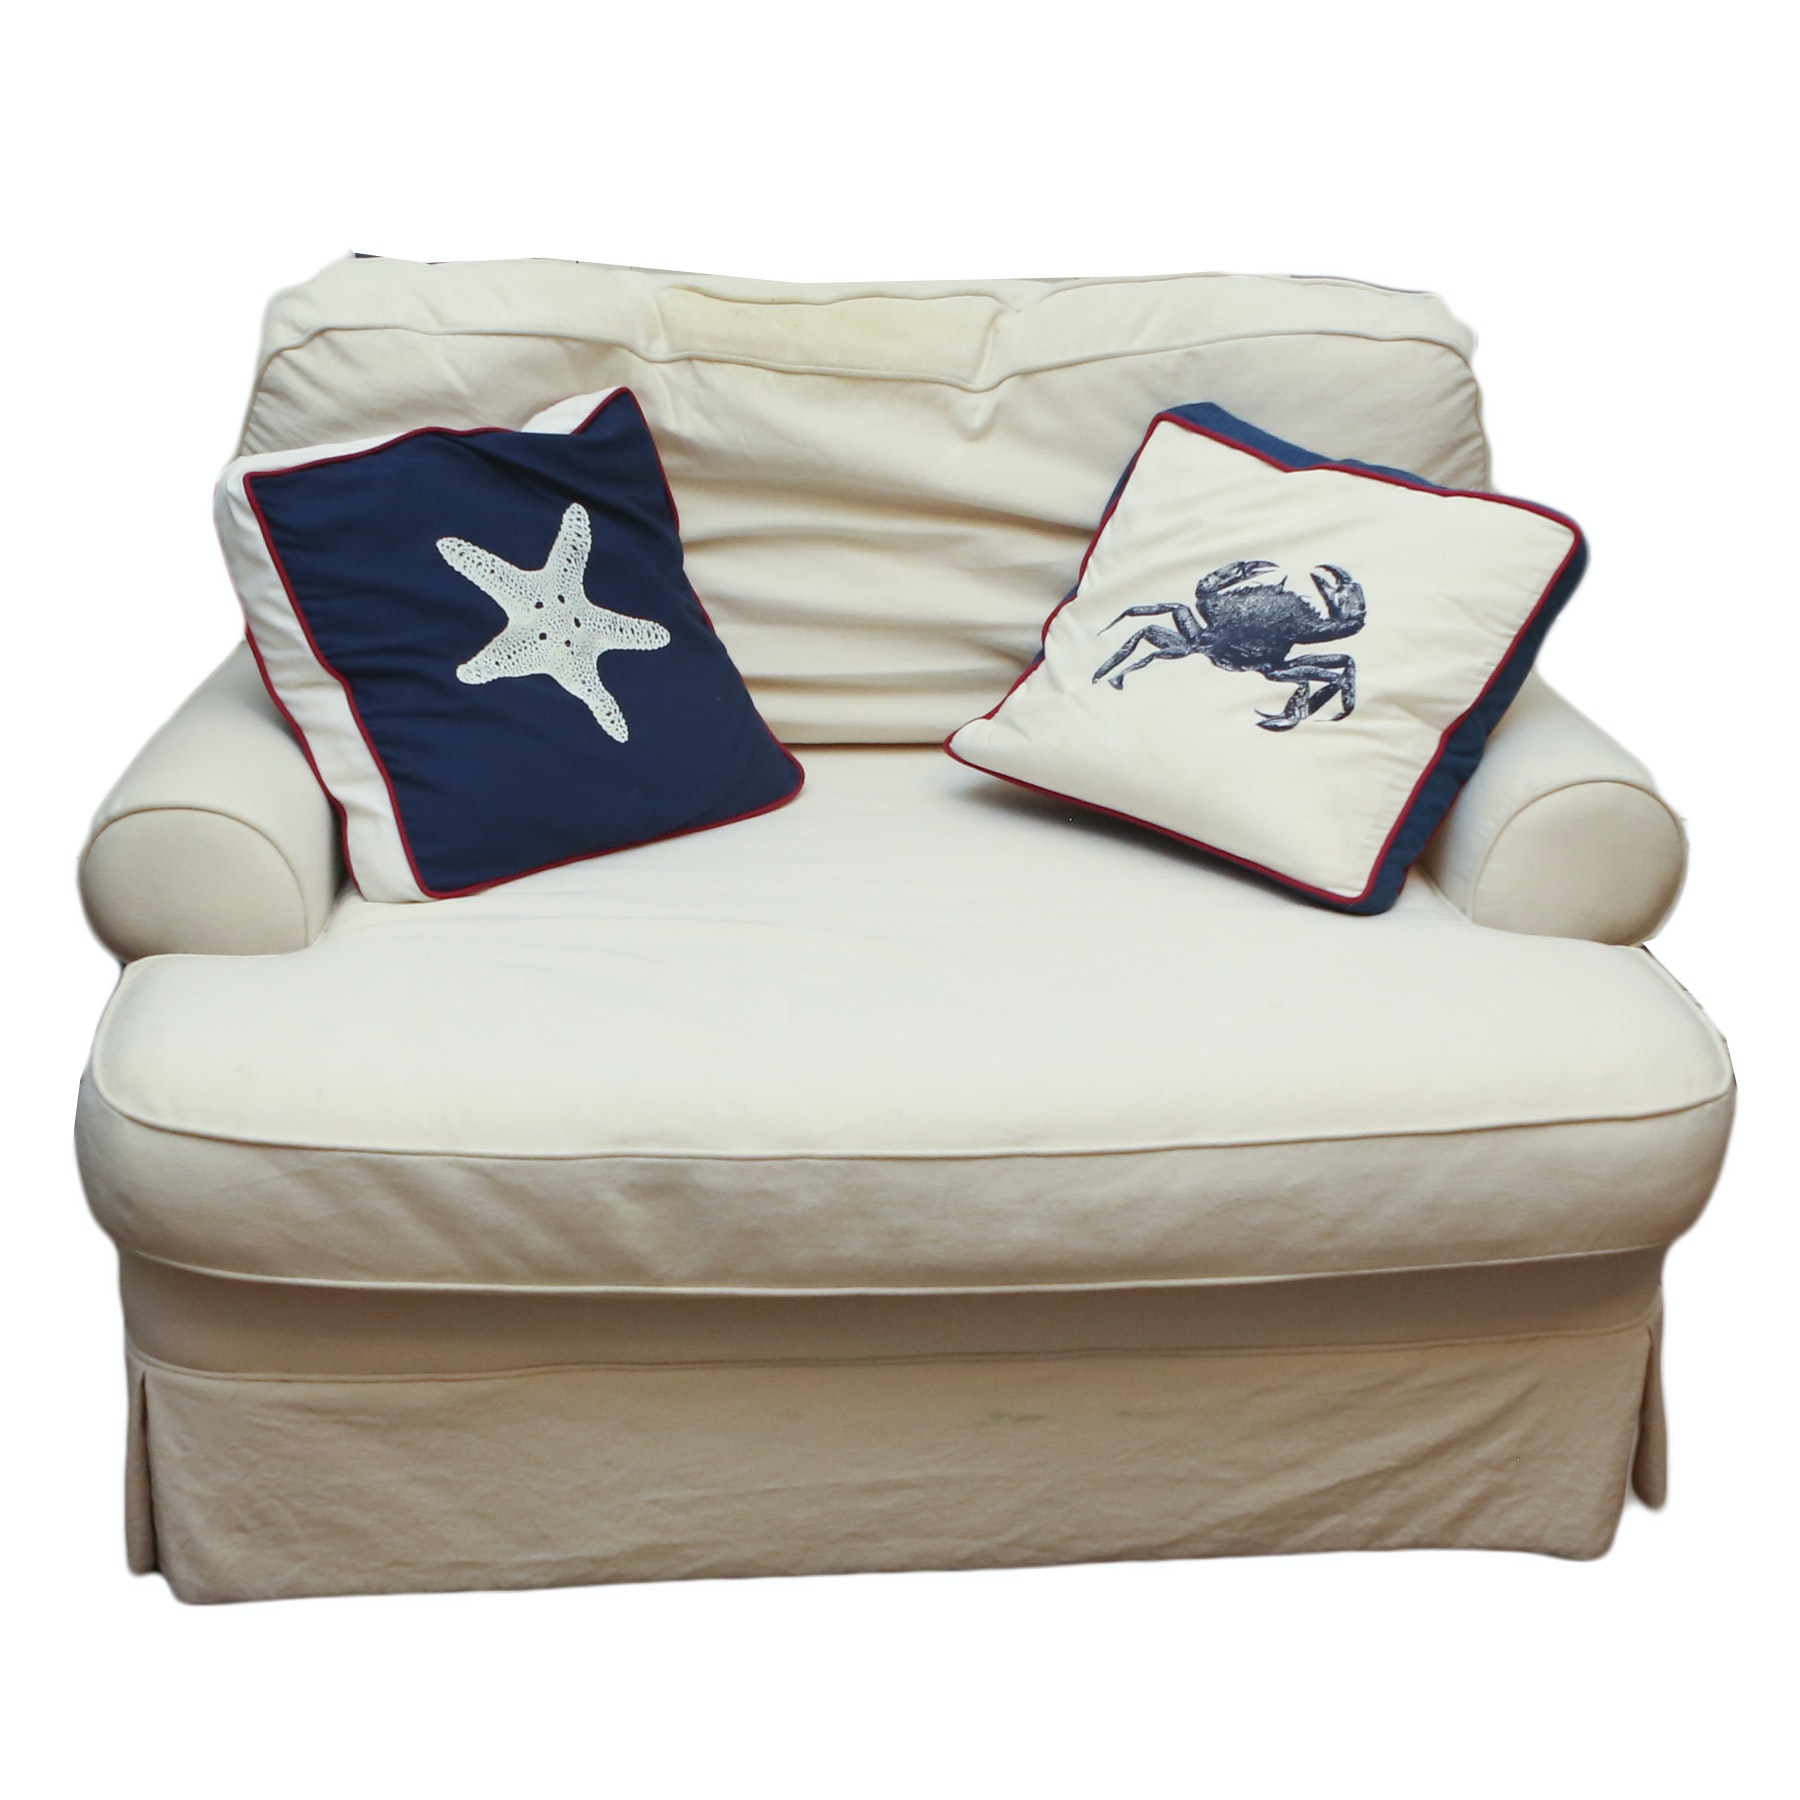 Mitchell Gold Oversized White Cotton Chair with Nautical Accent Pillows